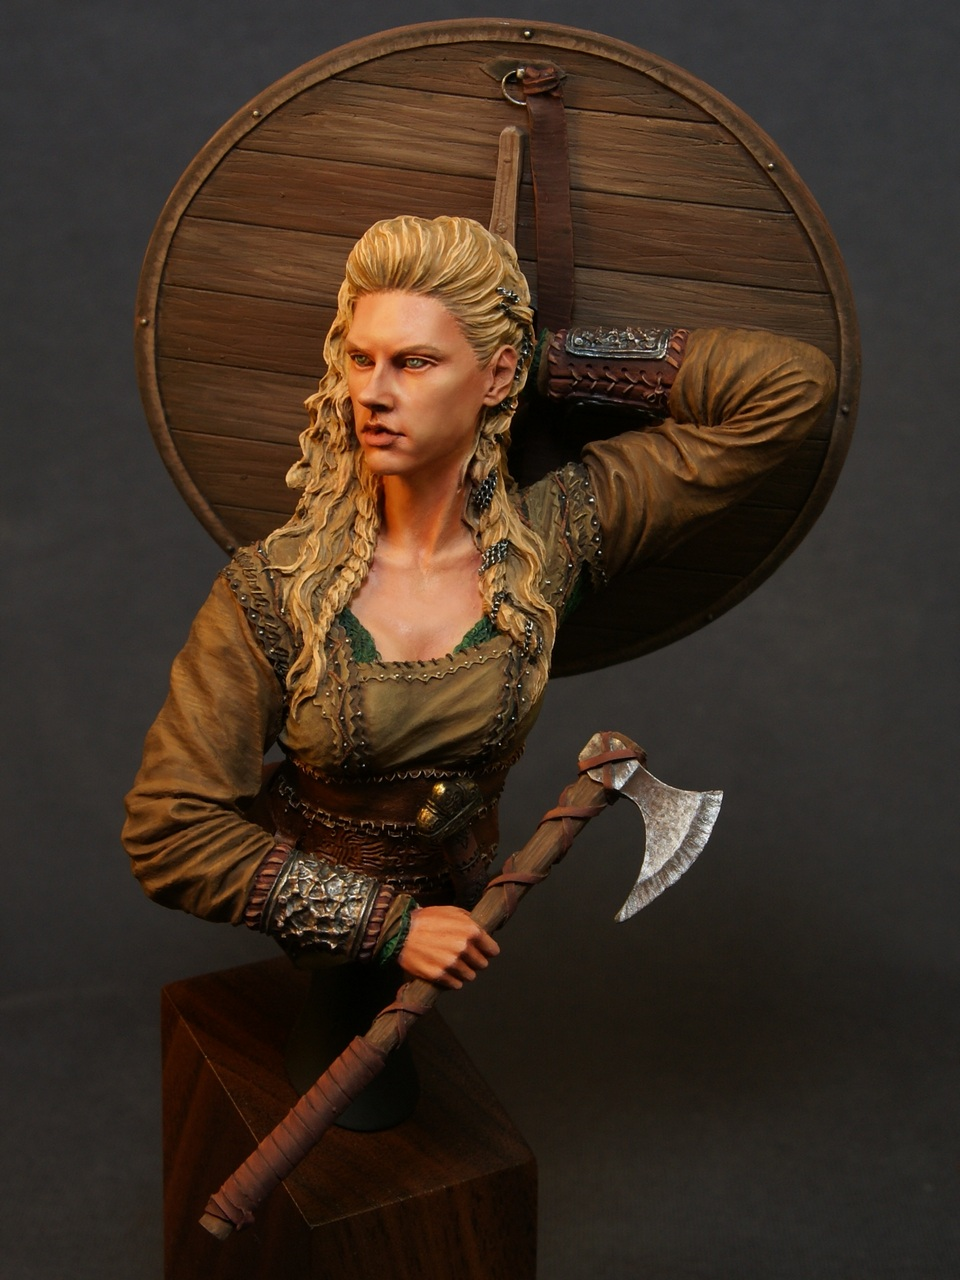 Figures: Lagertha, photo #6